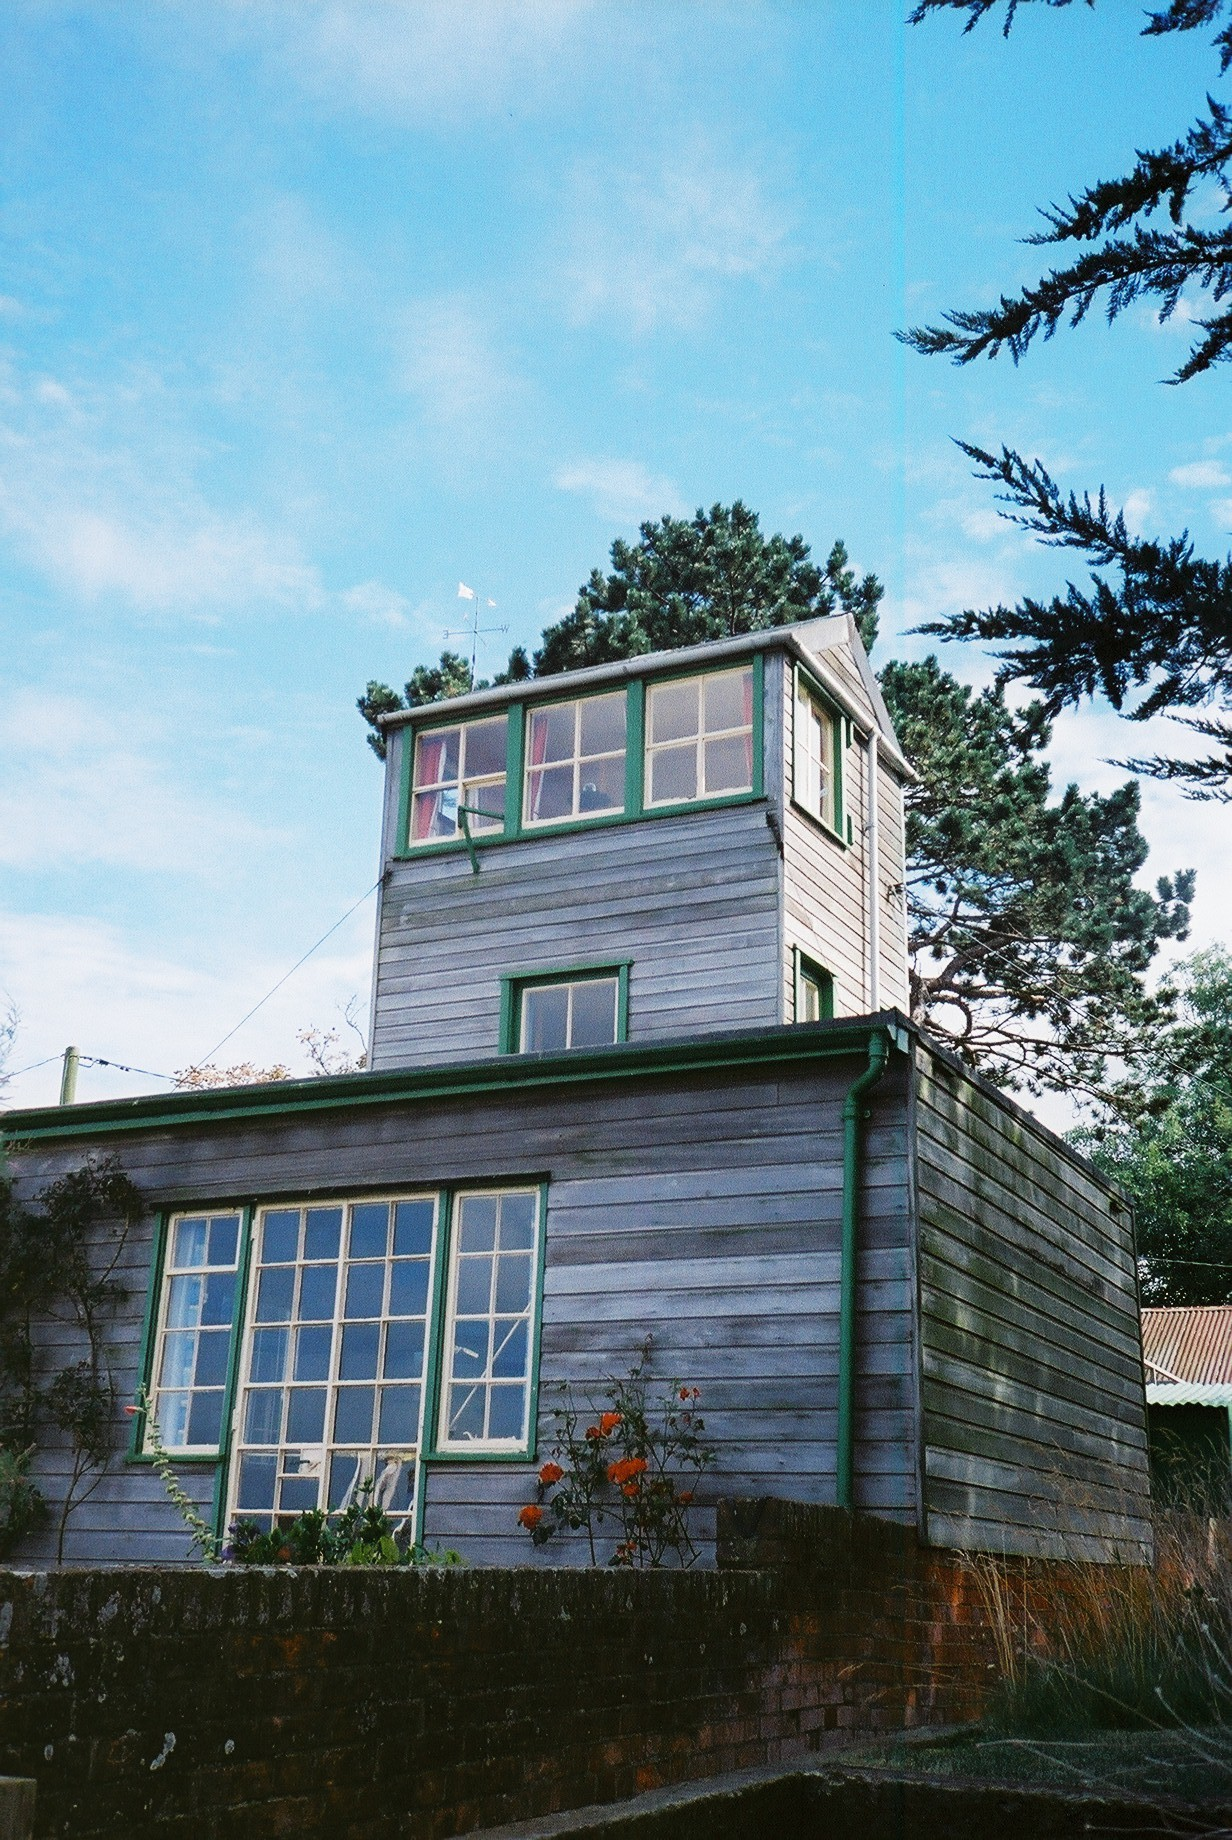 Brancaster, shed tower dream home.